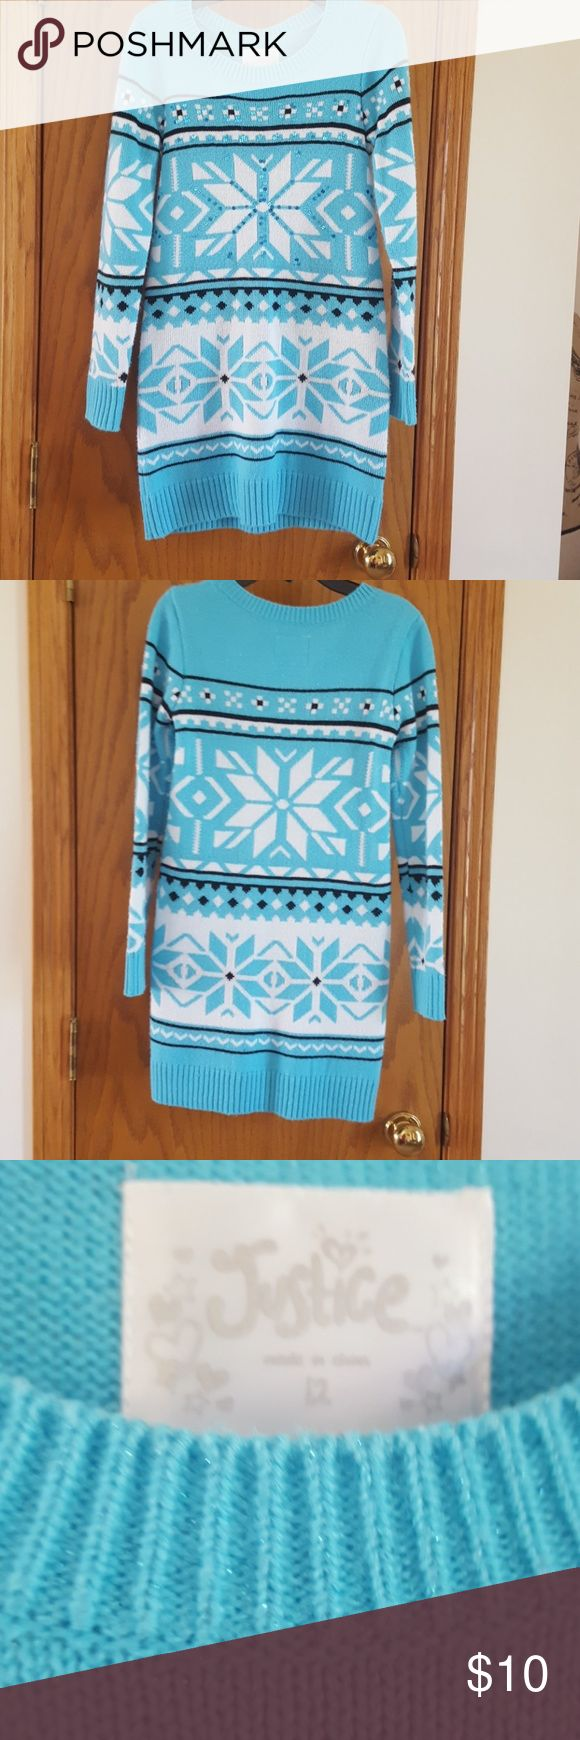 SWEATER DRESS BY JUSTICE Cute, pop-over sweater dress.  Girls size 12.  Justice brand.  Sparkles with sequins.  Ice blue and white snowflake pattern.  Excellent condition. Justice Dresses Casual